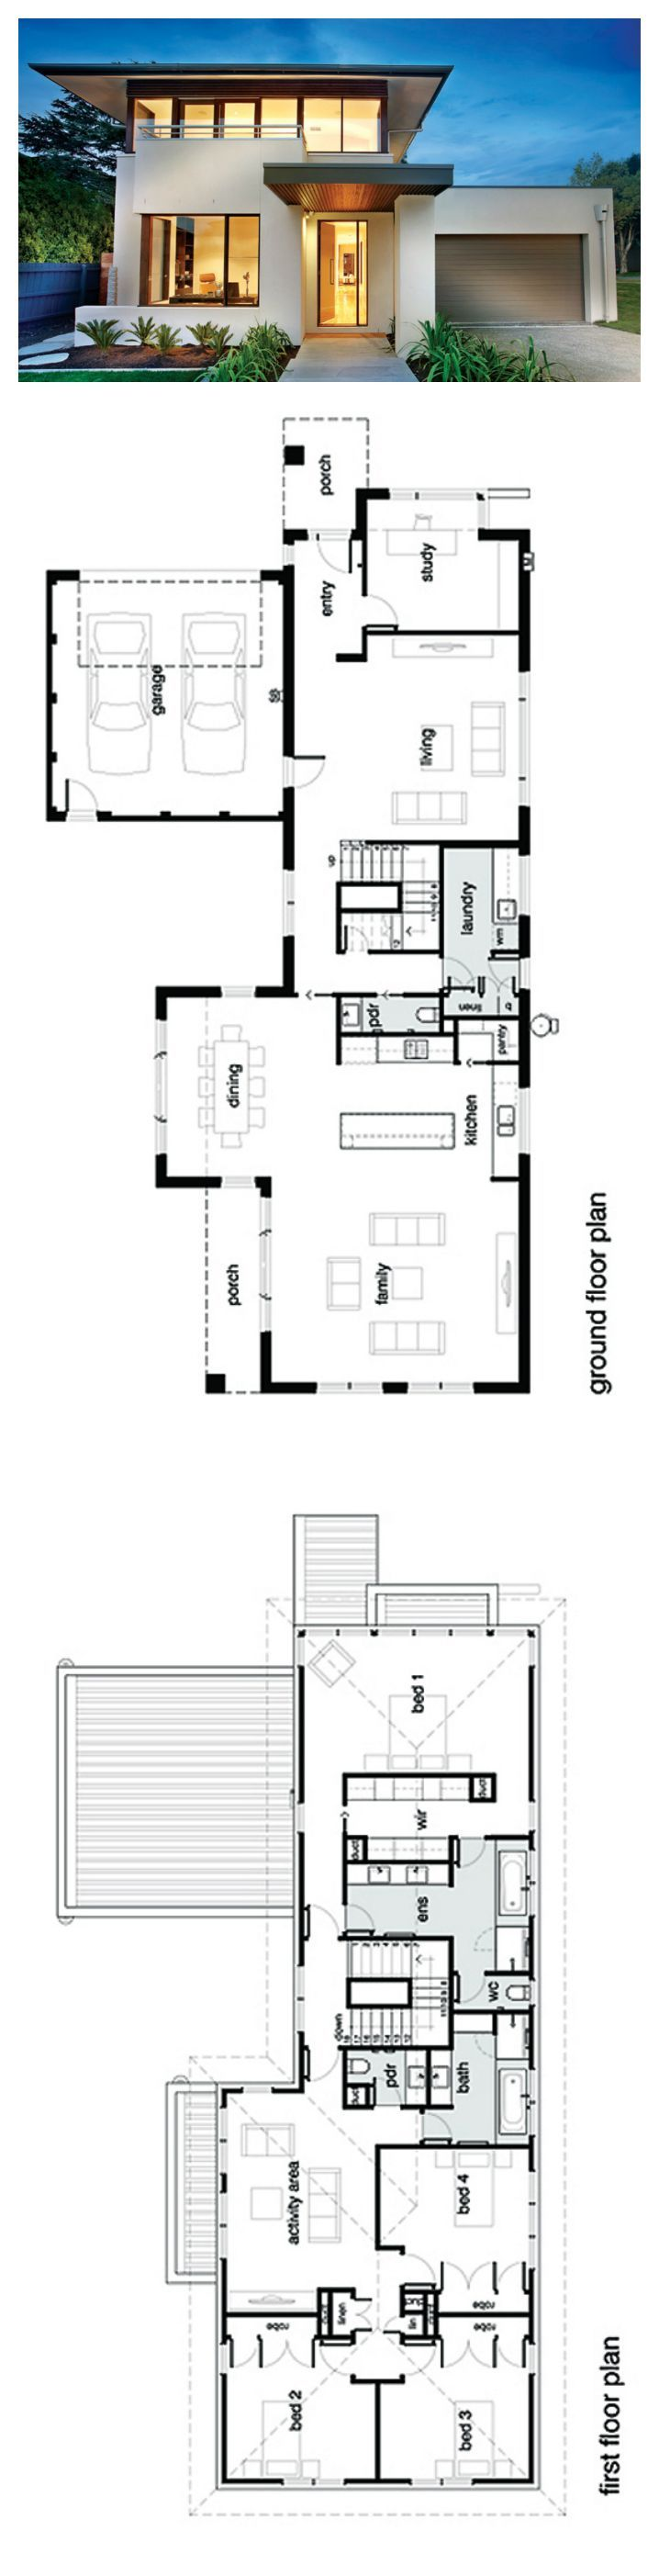 best 25 modern house plans ideas on pinterest On modern home building plans